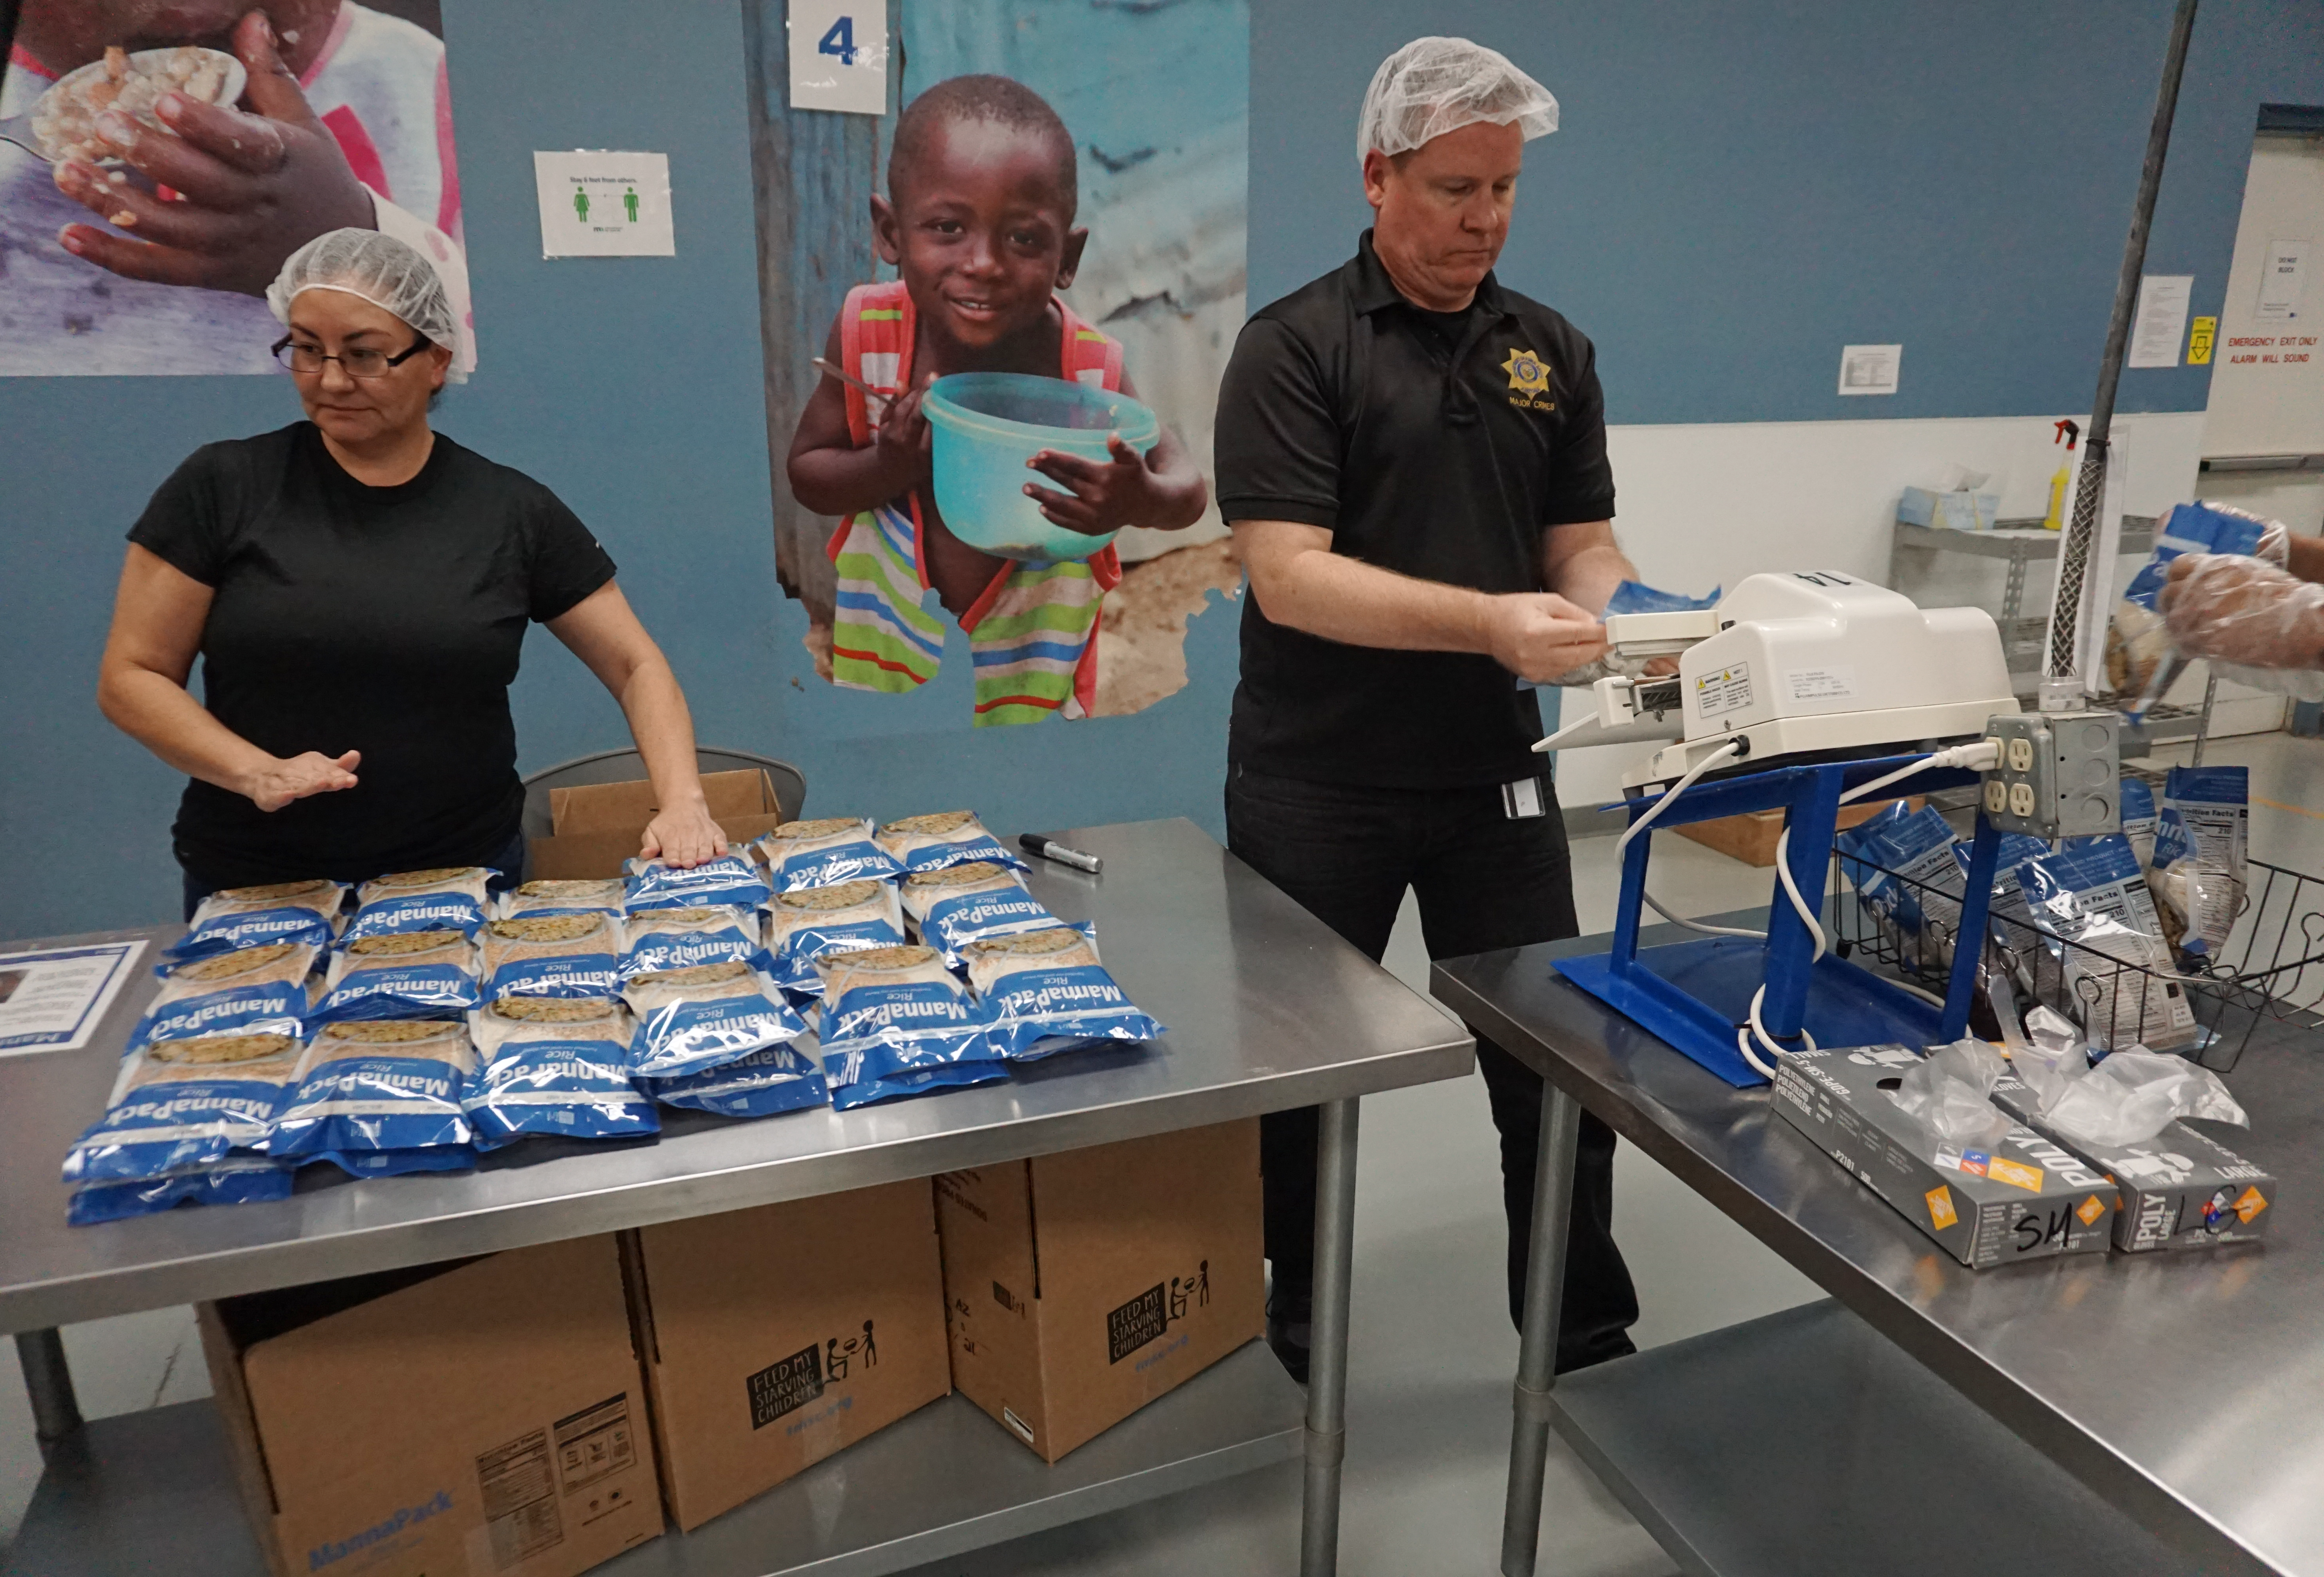 People packing food items for charity